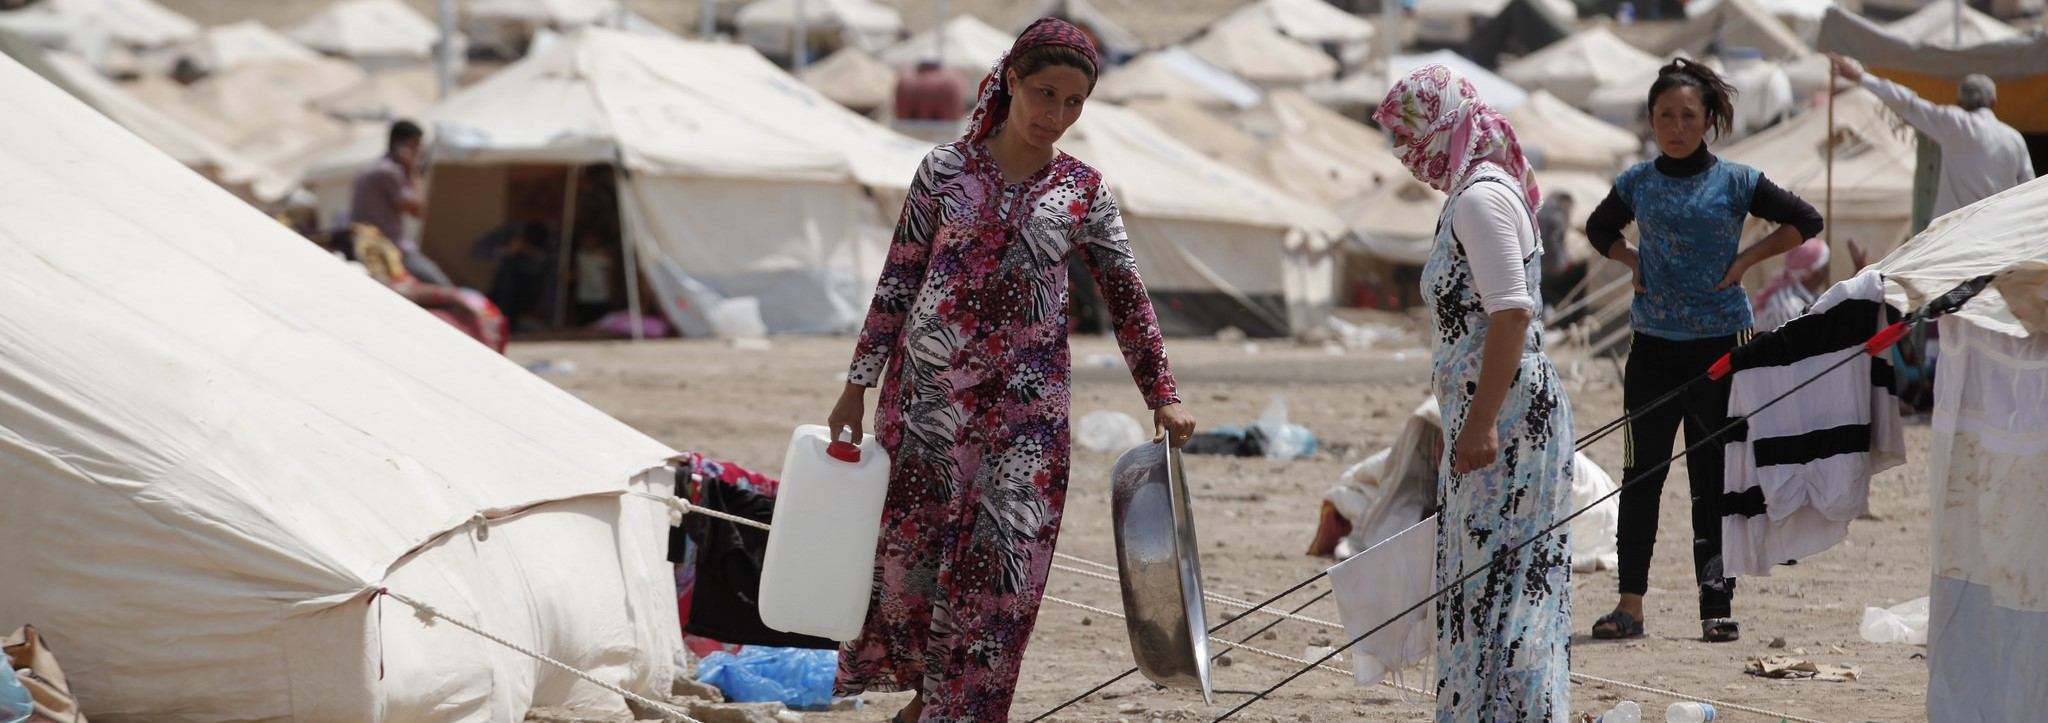 Syrian refugees in a Northern Iraq refugee camp (Photo: Flickr/IHH)